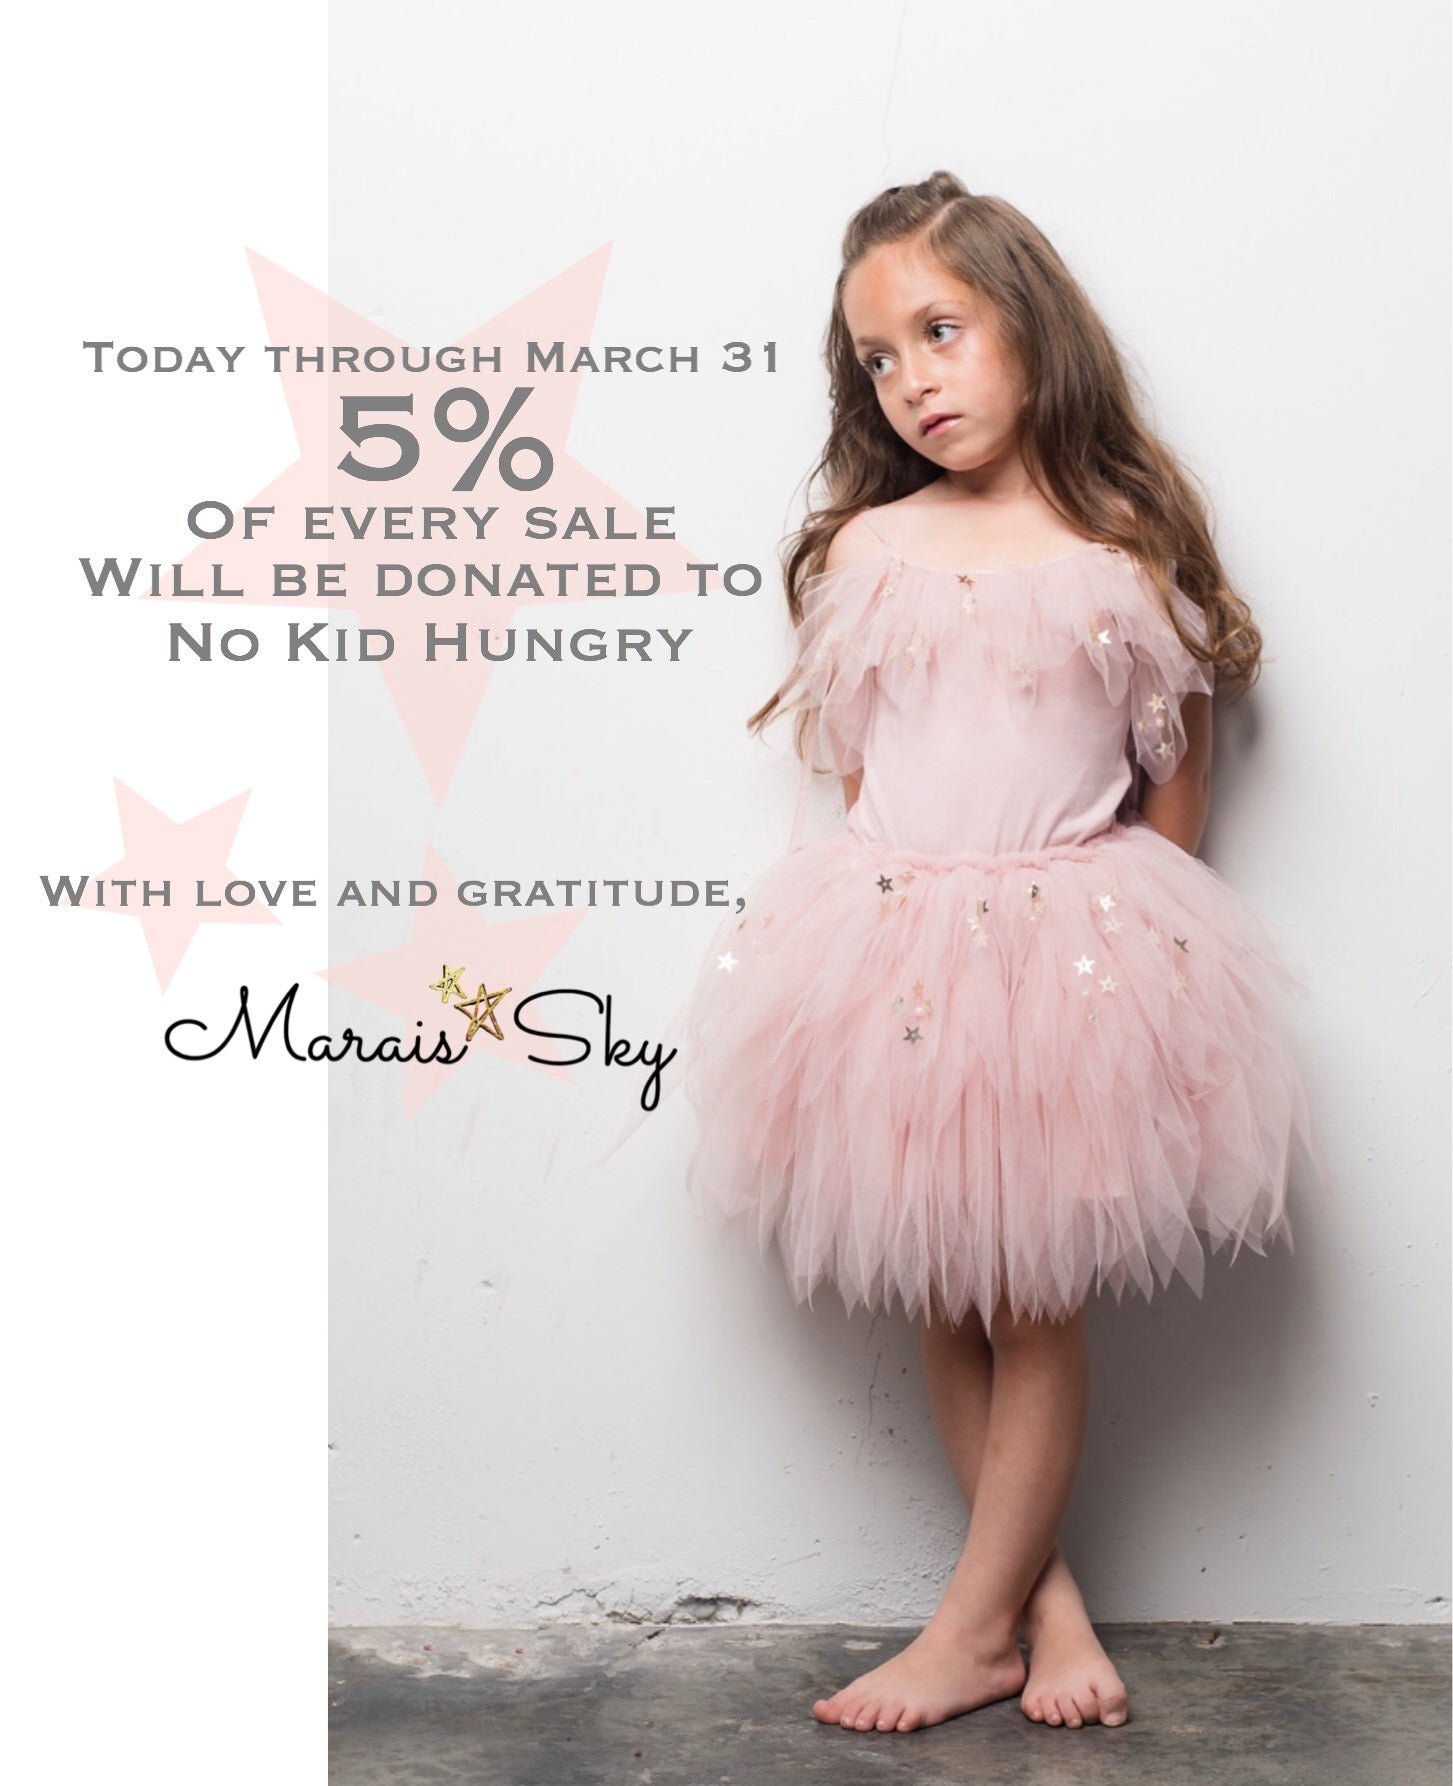 5 percent donation to no kid hungry